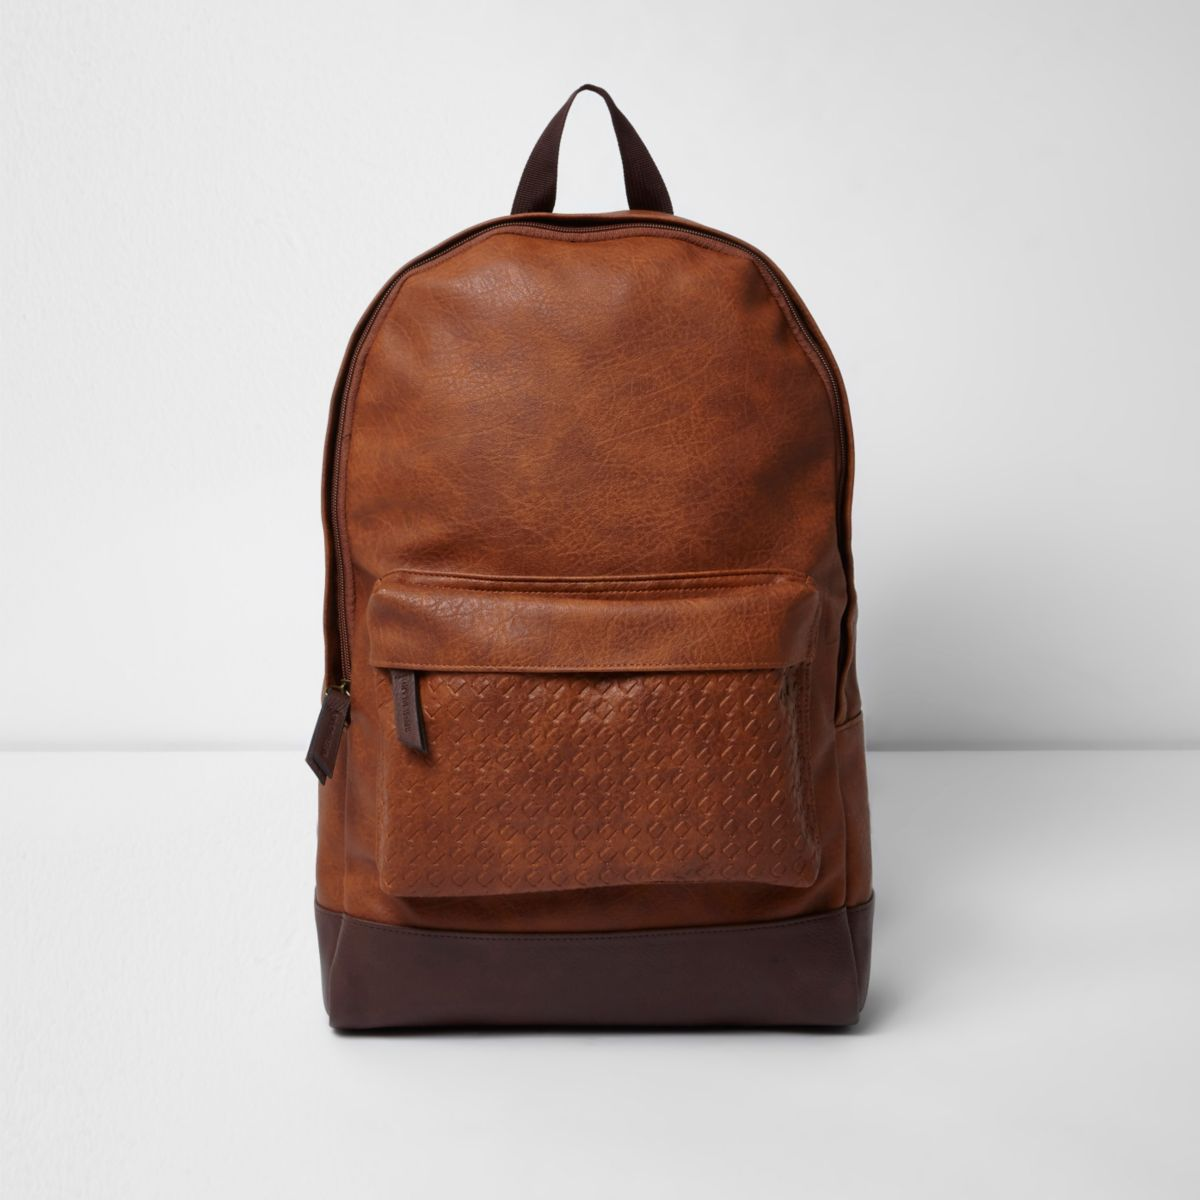 Brown lattice strap backpack